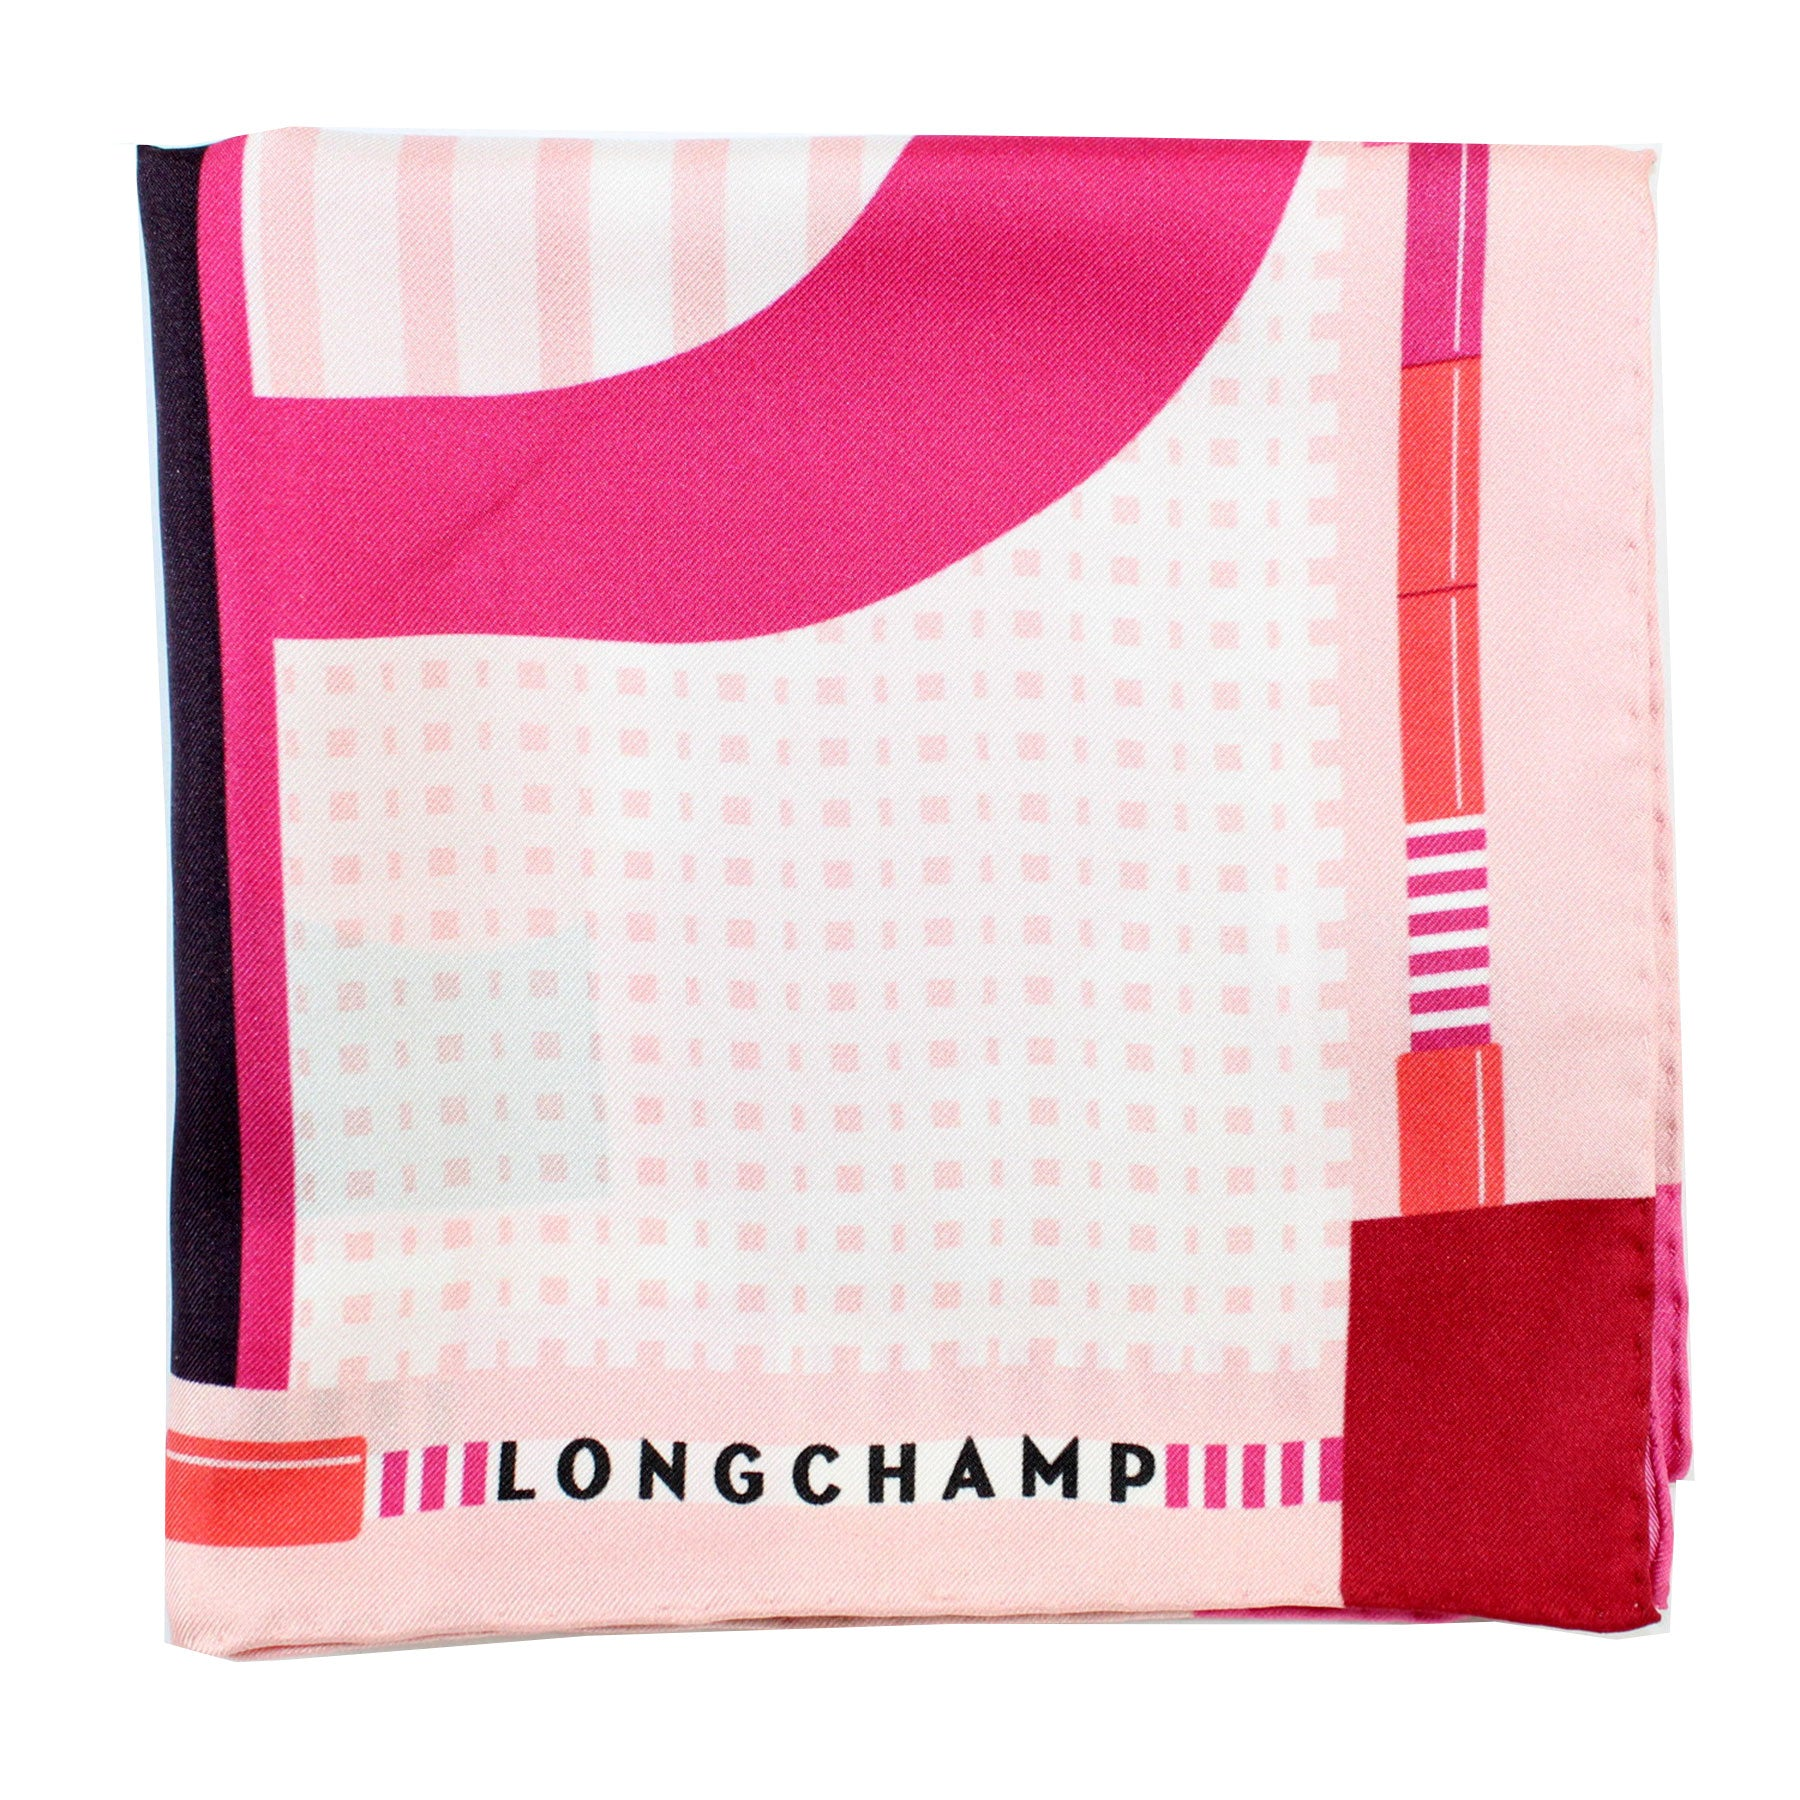 Longchamp Scarf Fuchsia Pink Red Logo Design - Medium Square Twill Silk Foulard SALE